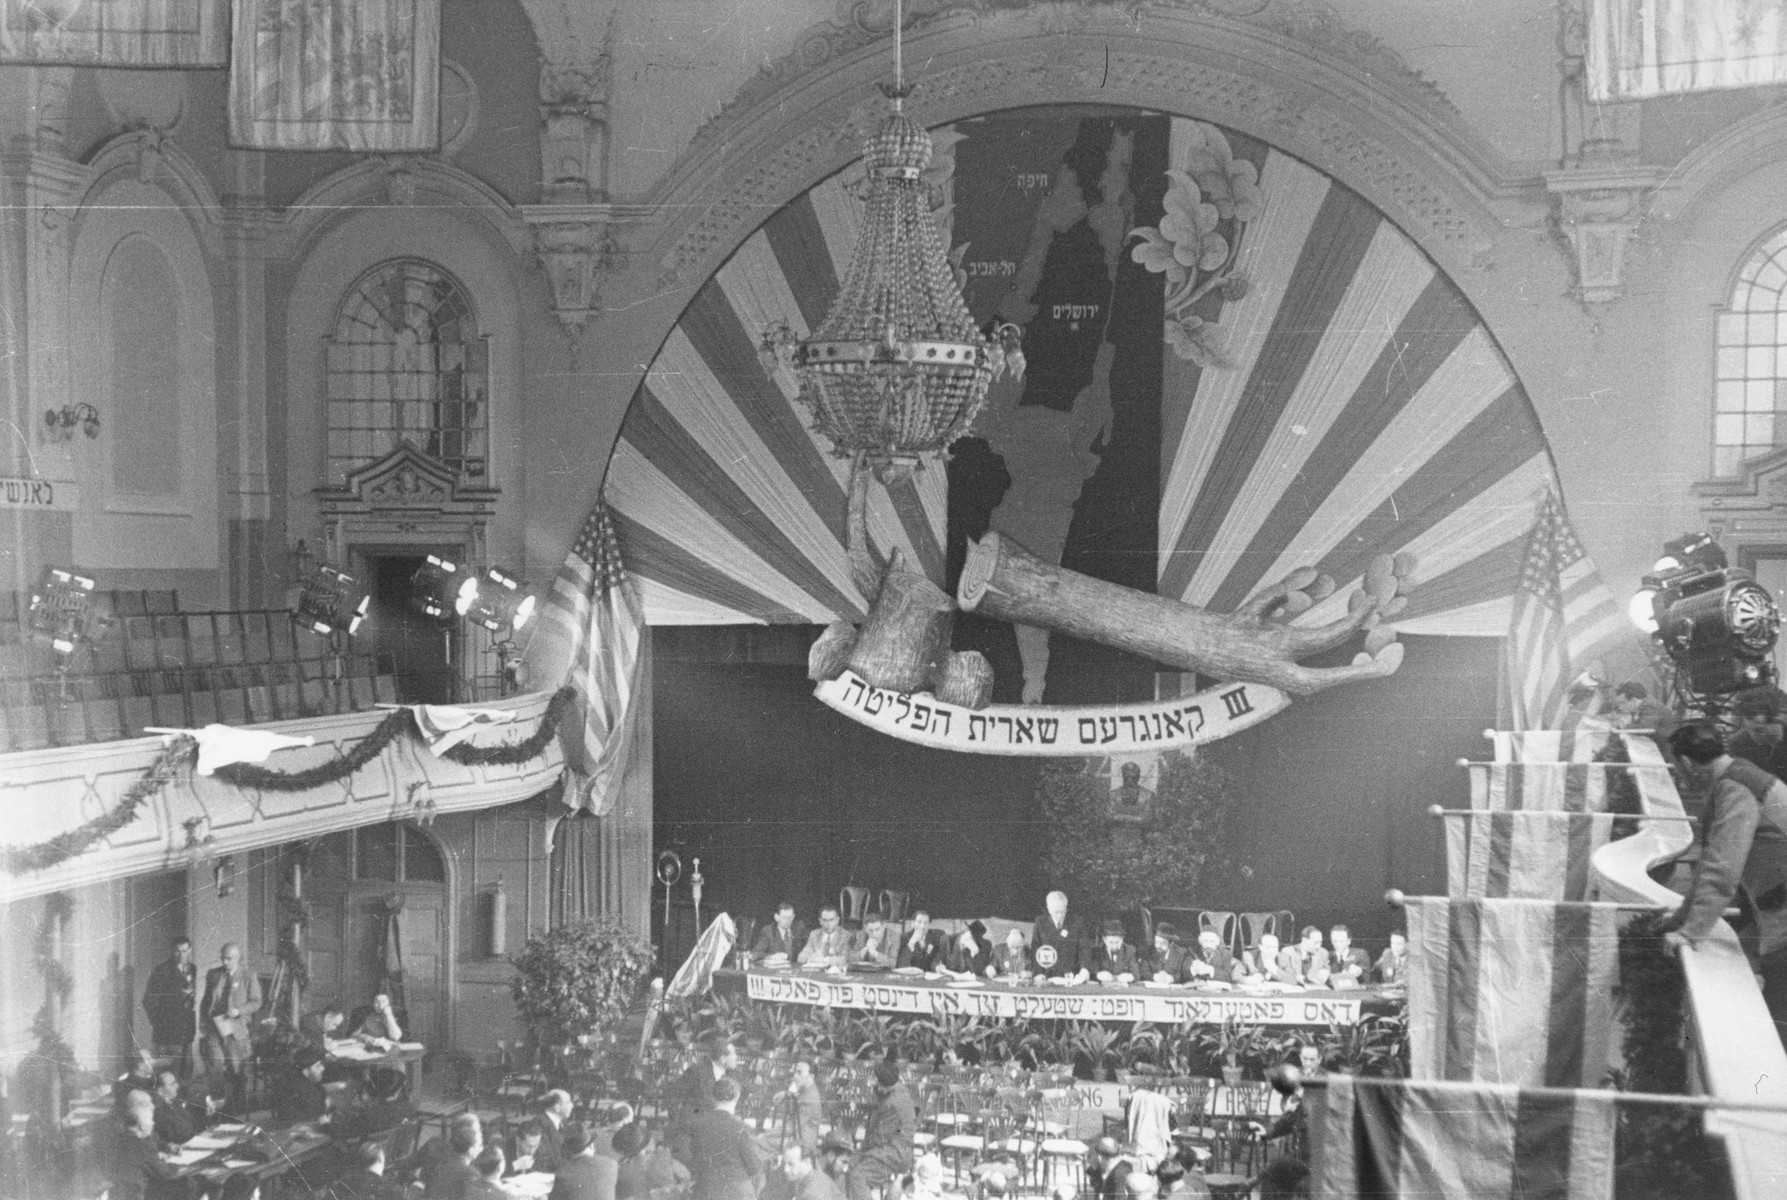 View of the meeting hall at the opening of the Third Congress of the Central Committee of the Liberated Jews in the US Zone held in Bad Reichenhall.